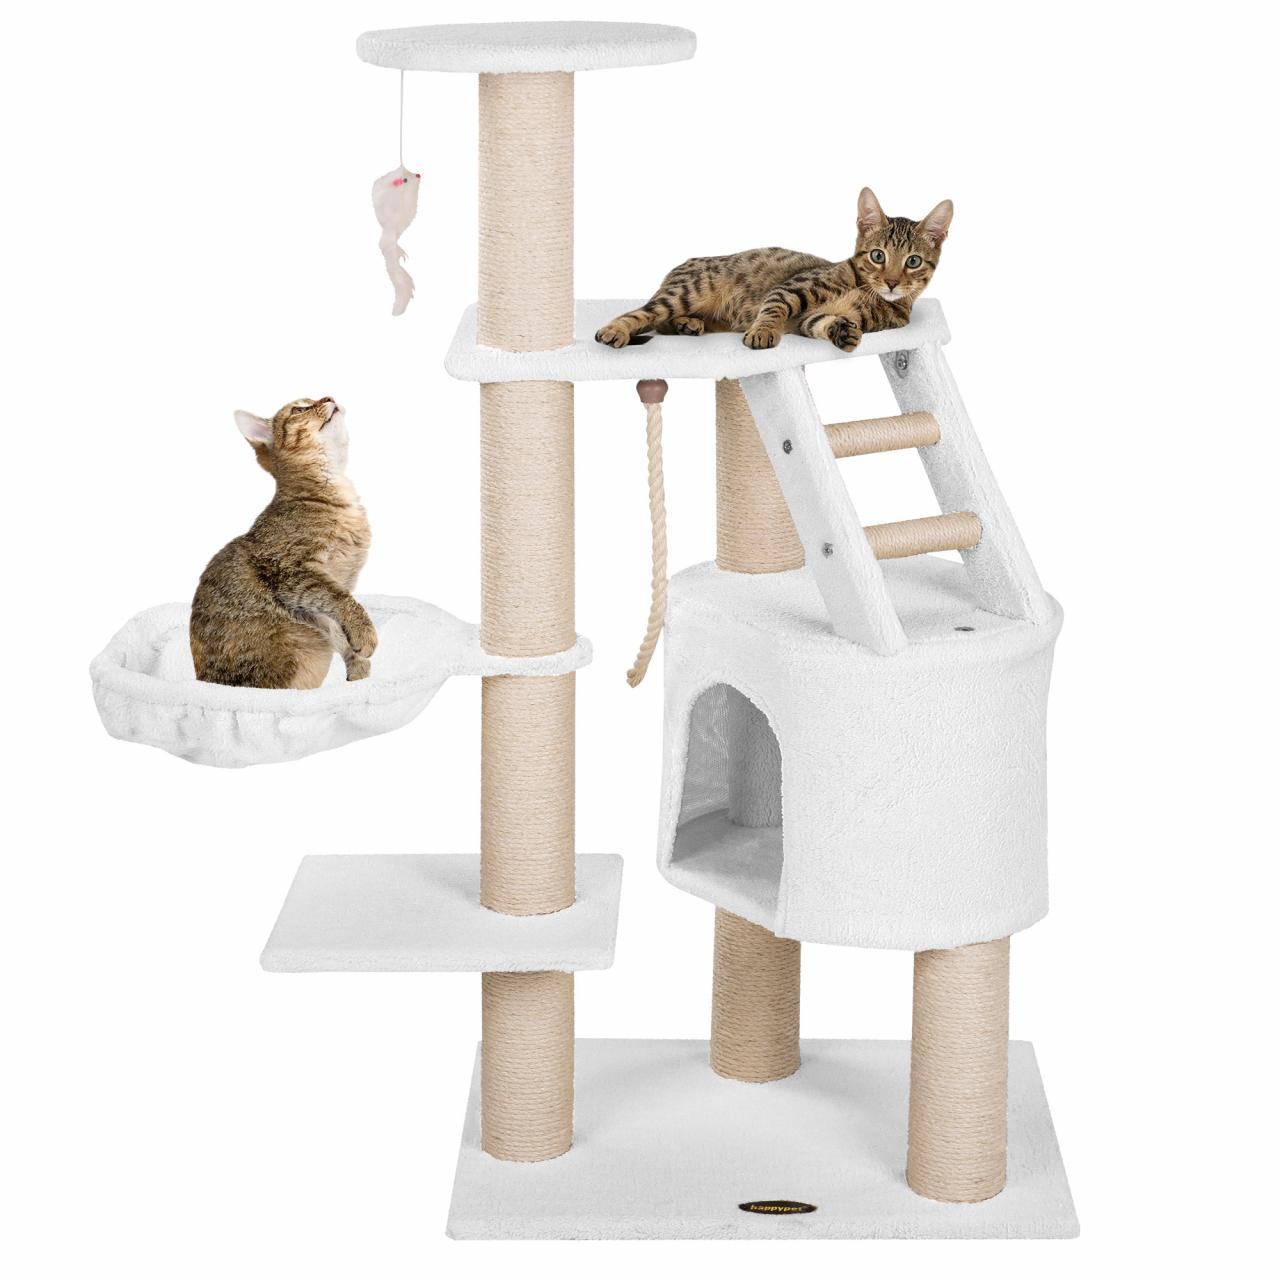 arbre chat griffoir grattoir 120cm diverses couleurs happypet cat017 neuf ebay. Black Bedroom Furniture Sets. Home Design Ideas